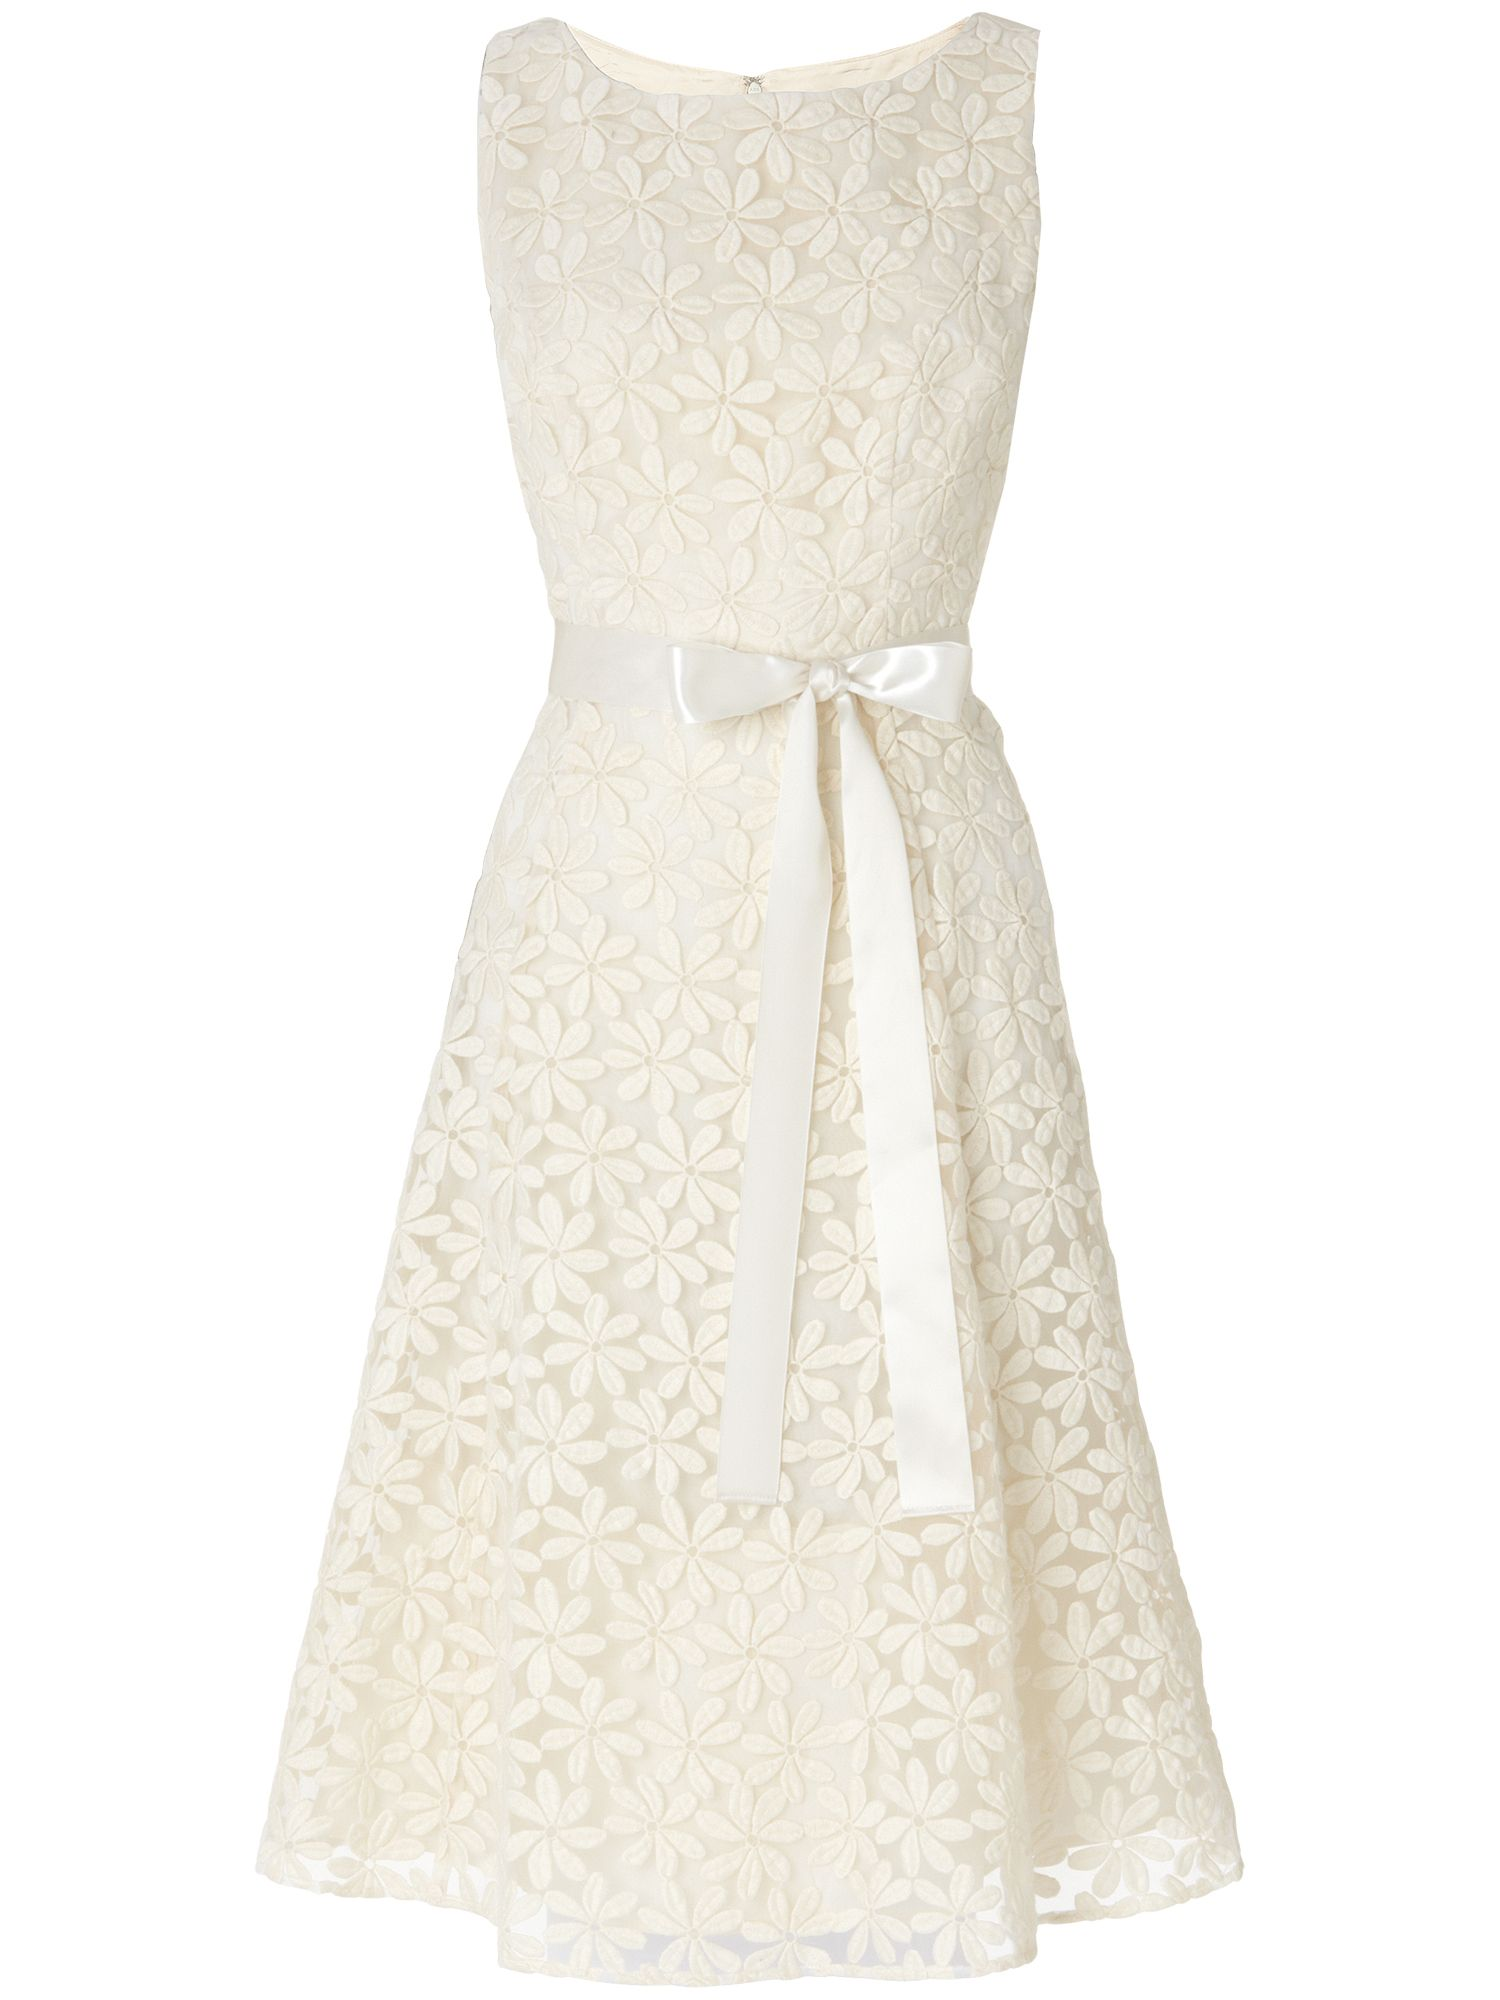 Daisy embroidered prom dress